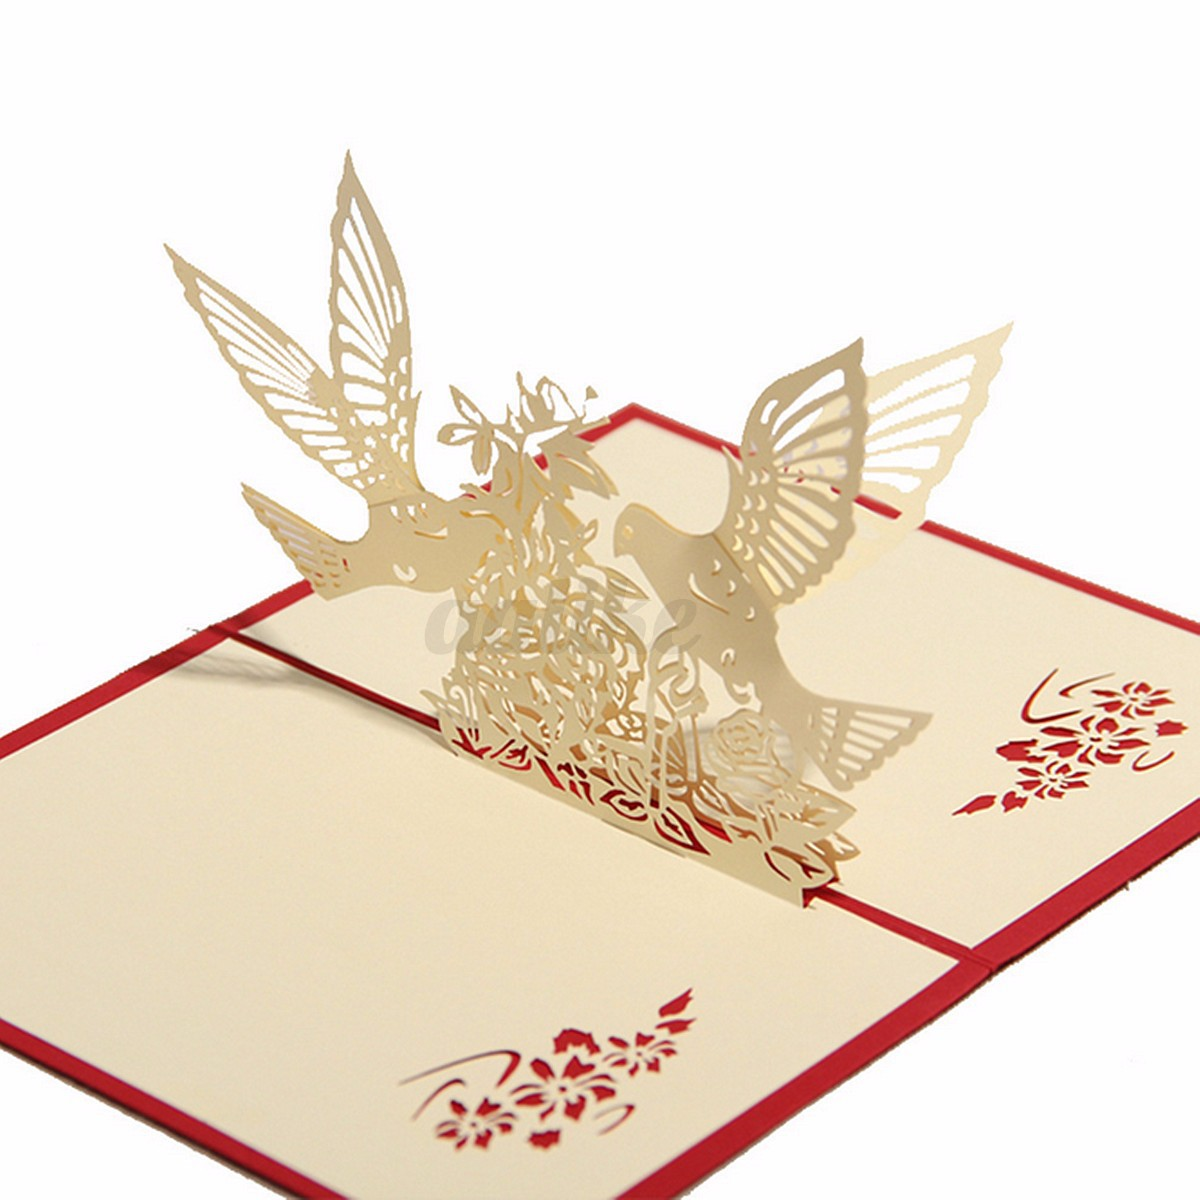 Happy birthday wedding anniversary invitation 3d pop up for Kirigami christmas card